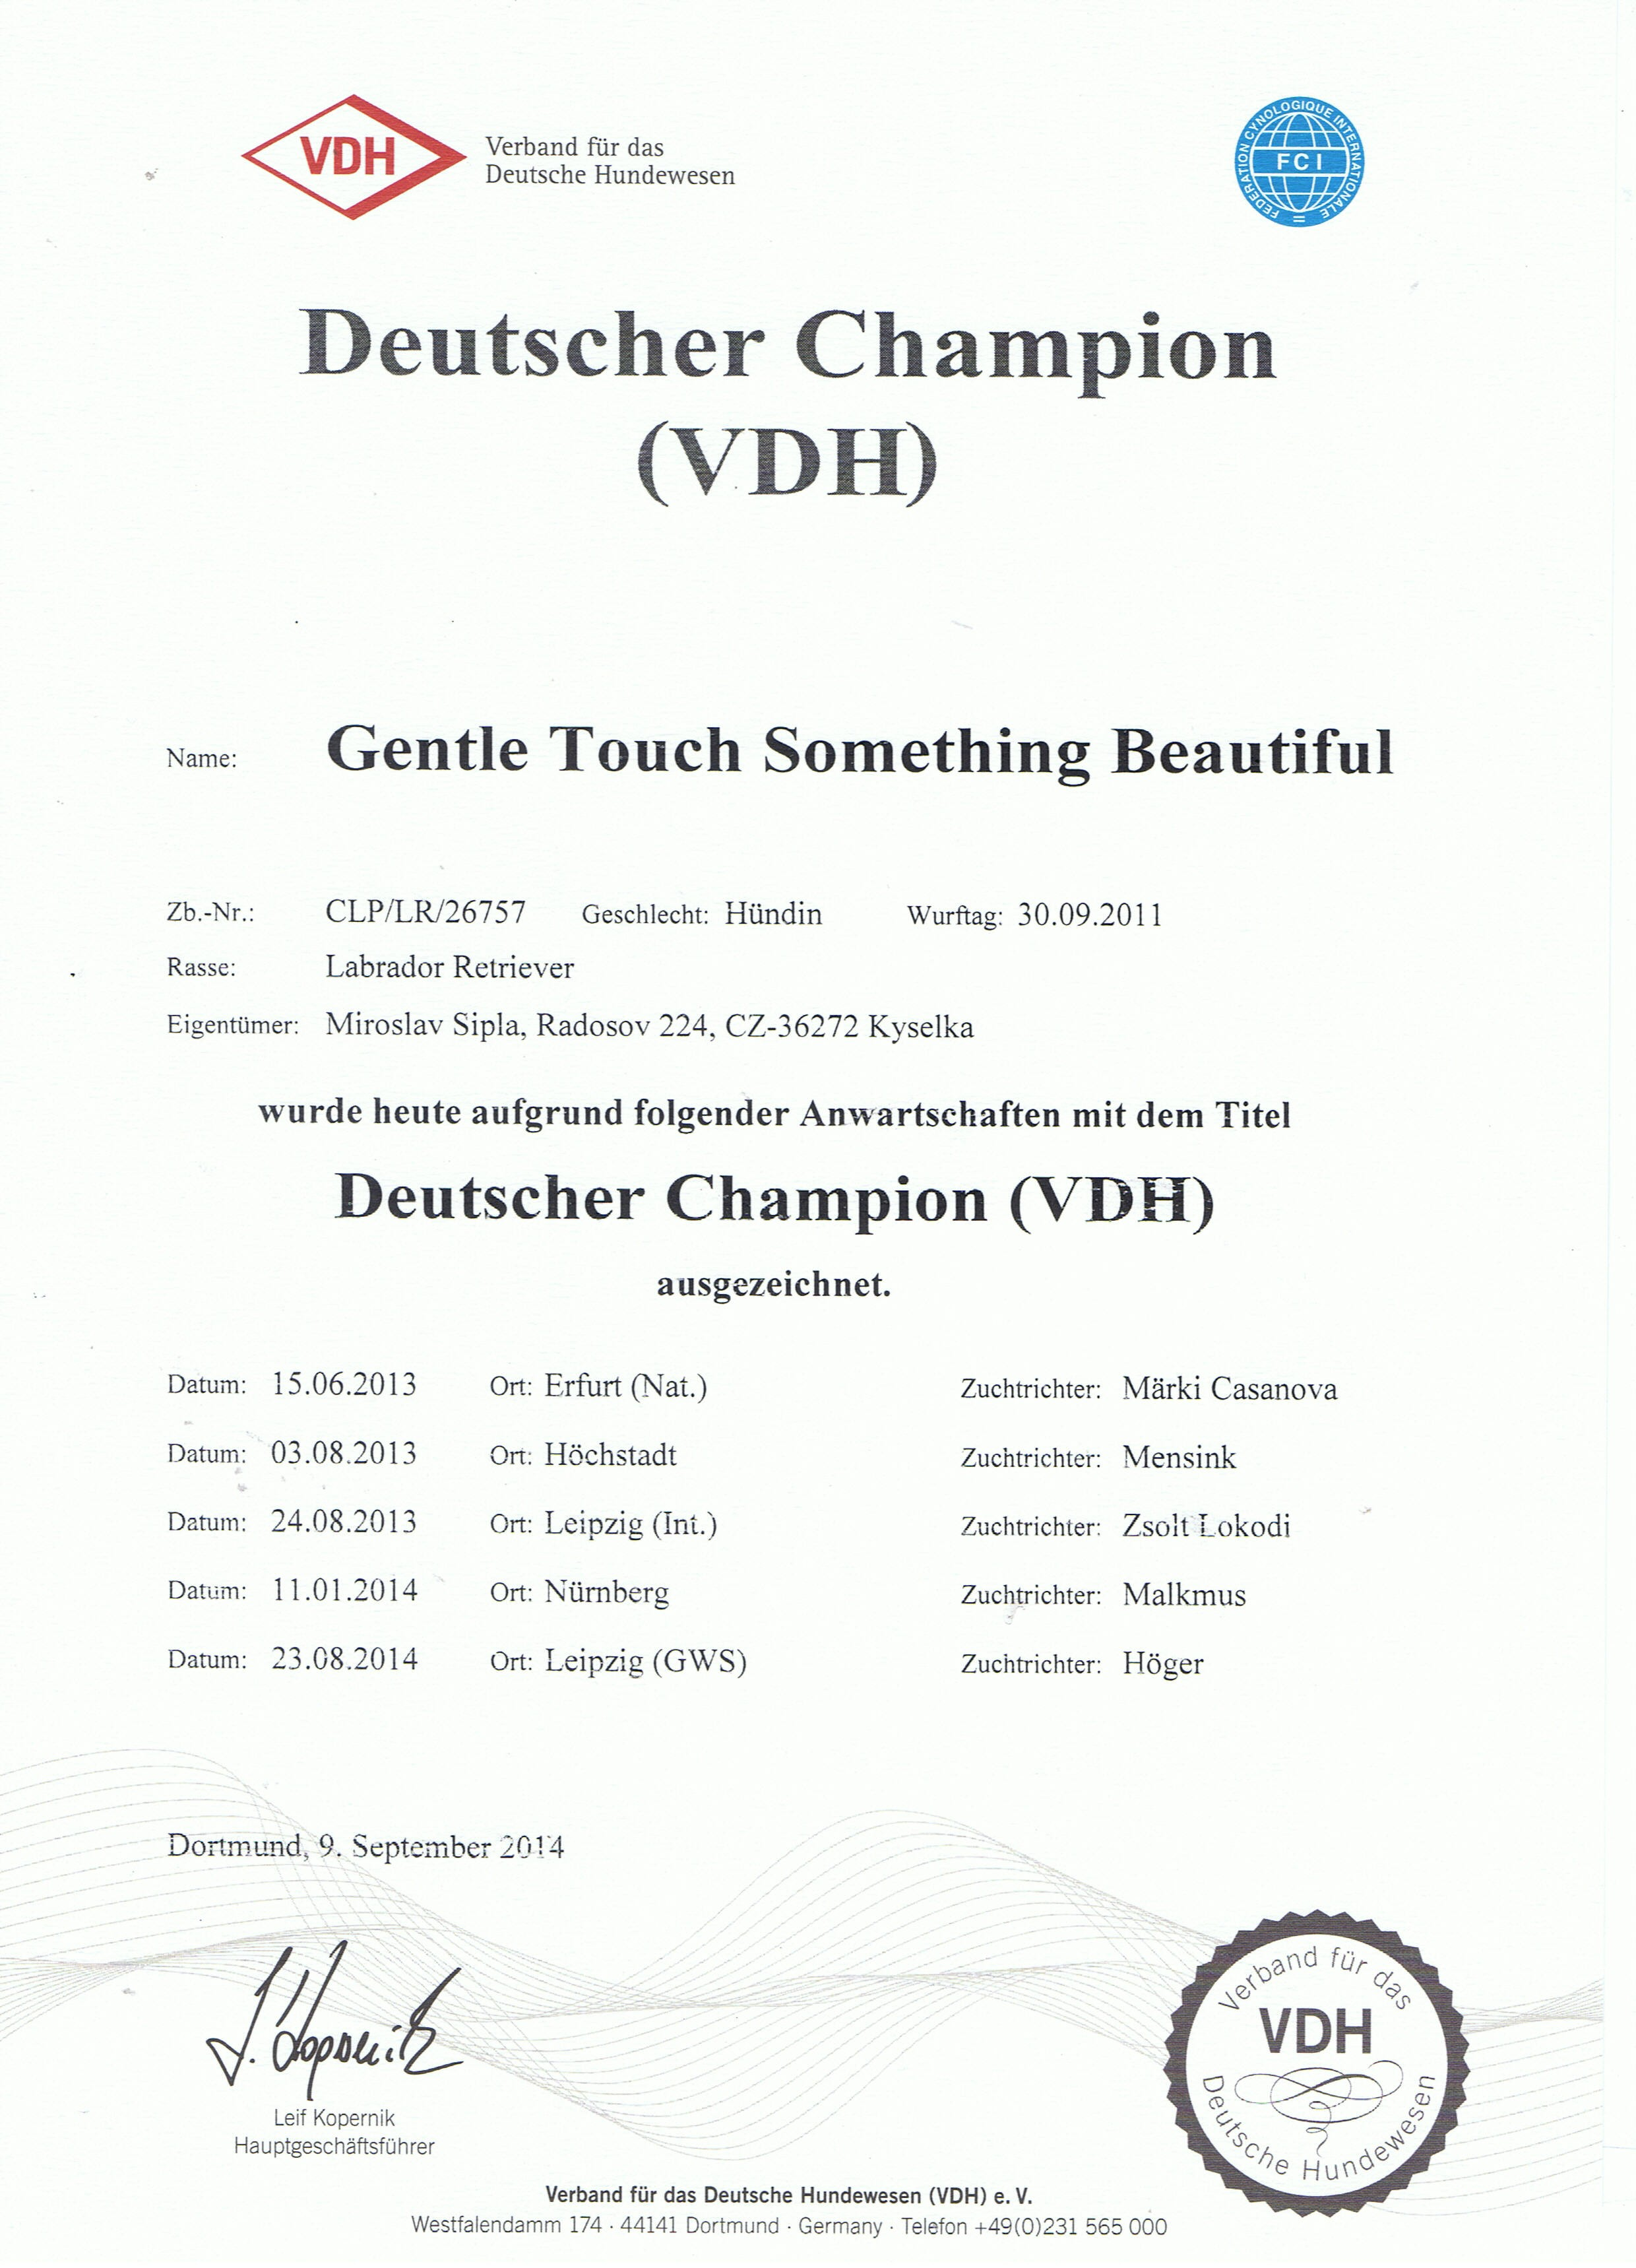 deutscher-champion--vdh-.jpg